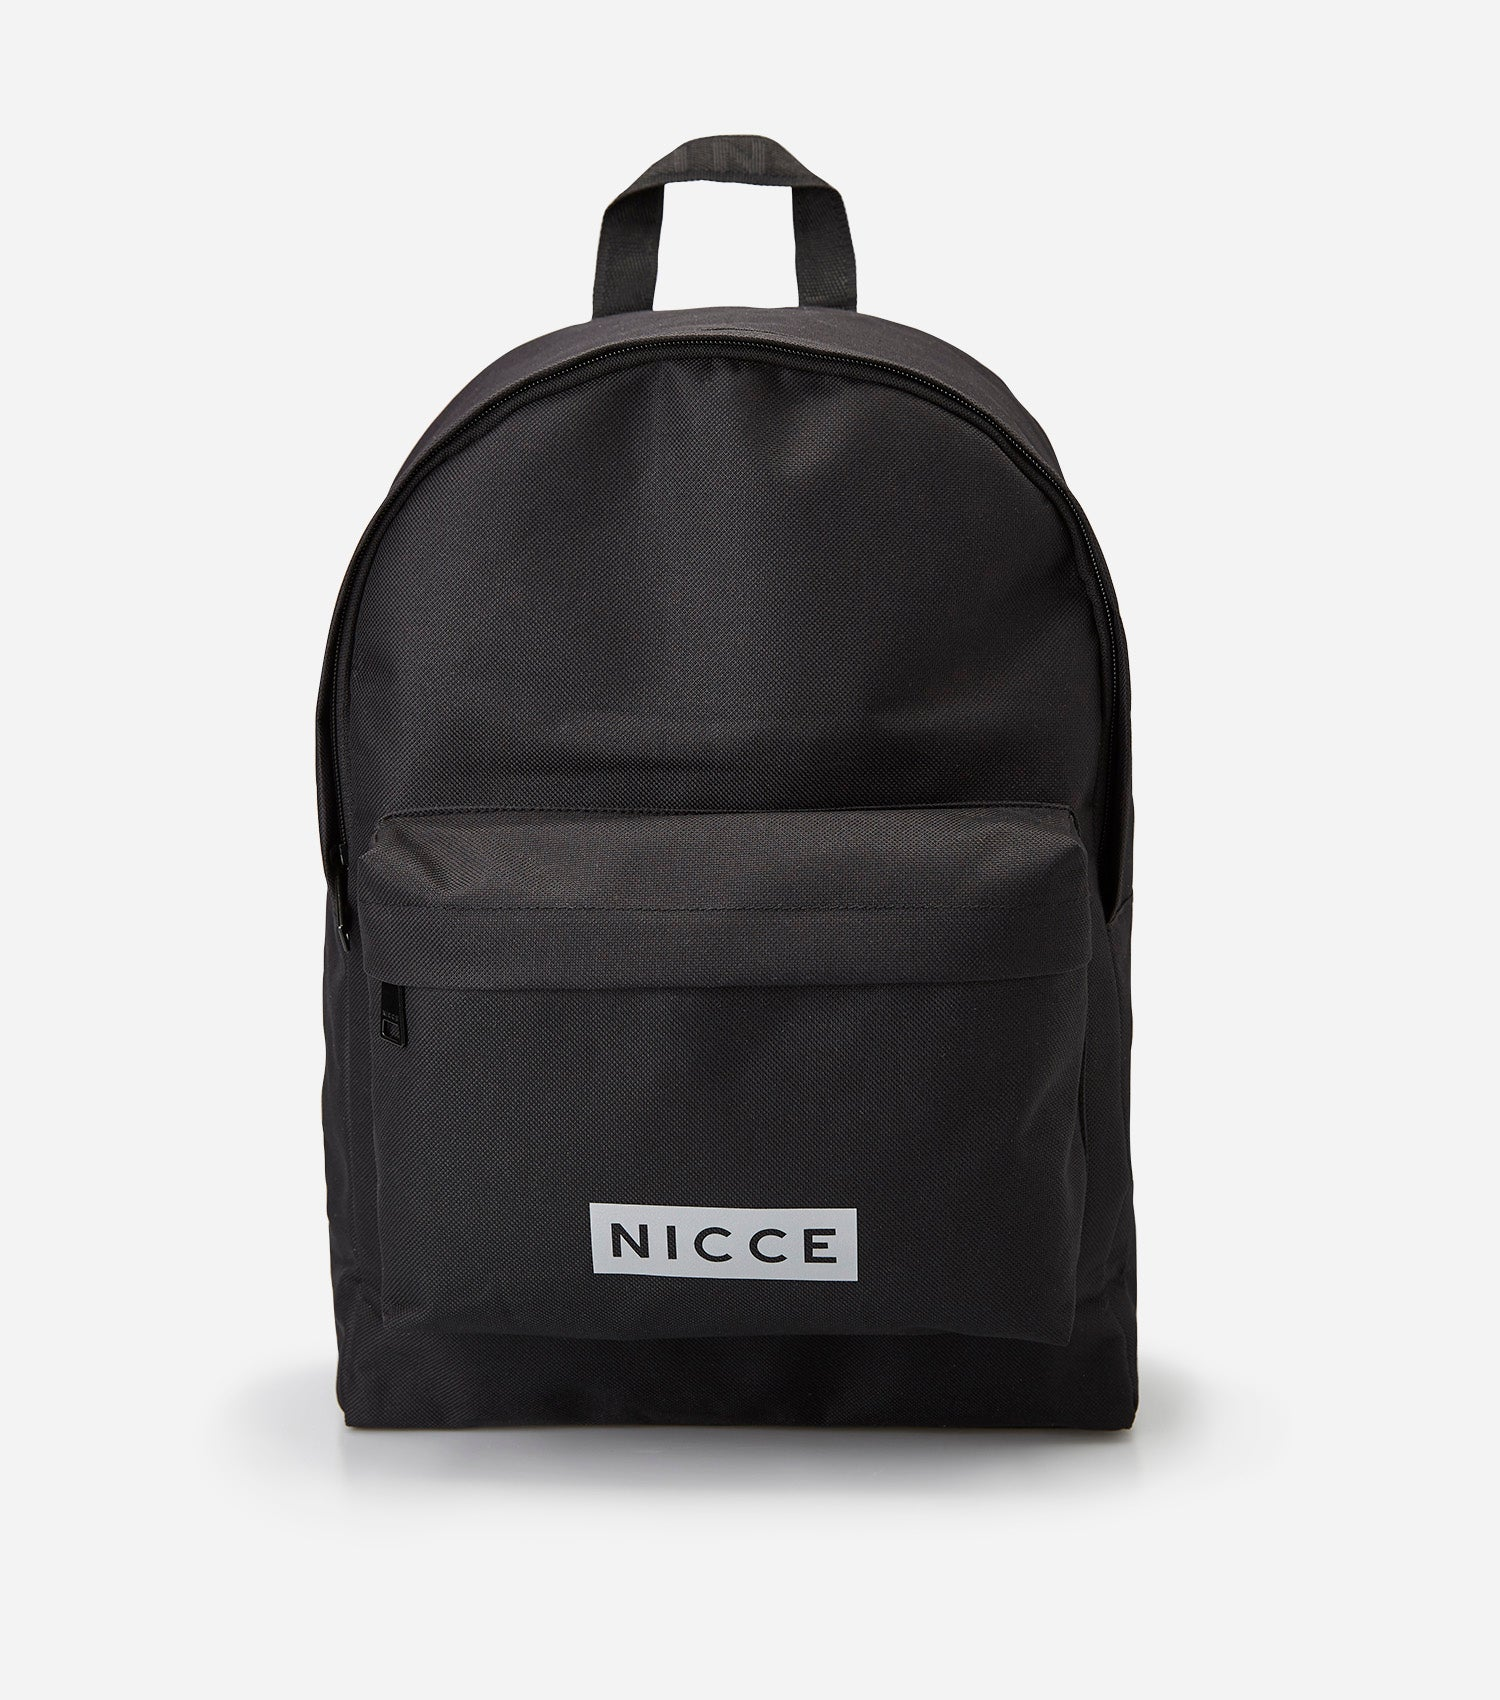 NICCE Station Backpack | Black, Bags